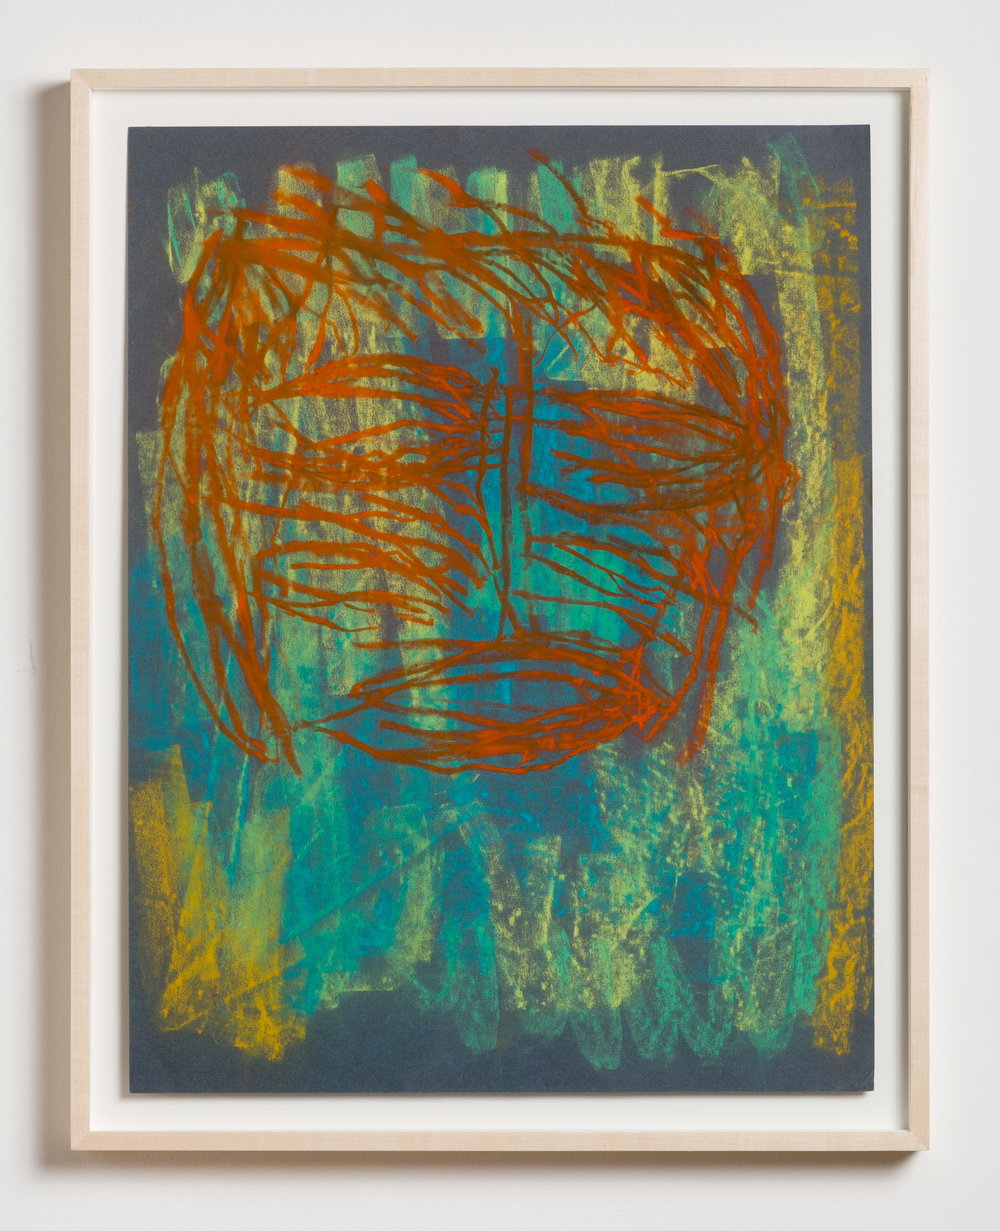 Dan Asher,  Untitled , 1980s, pastel on paper, 26 × 19 in., 28 ½ × 22 ⅝ in. framed)